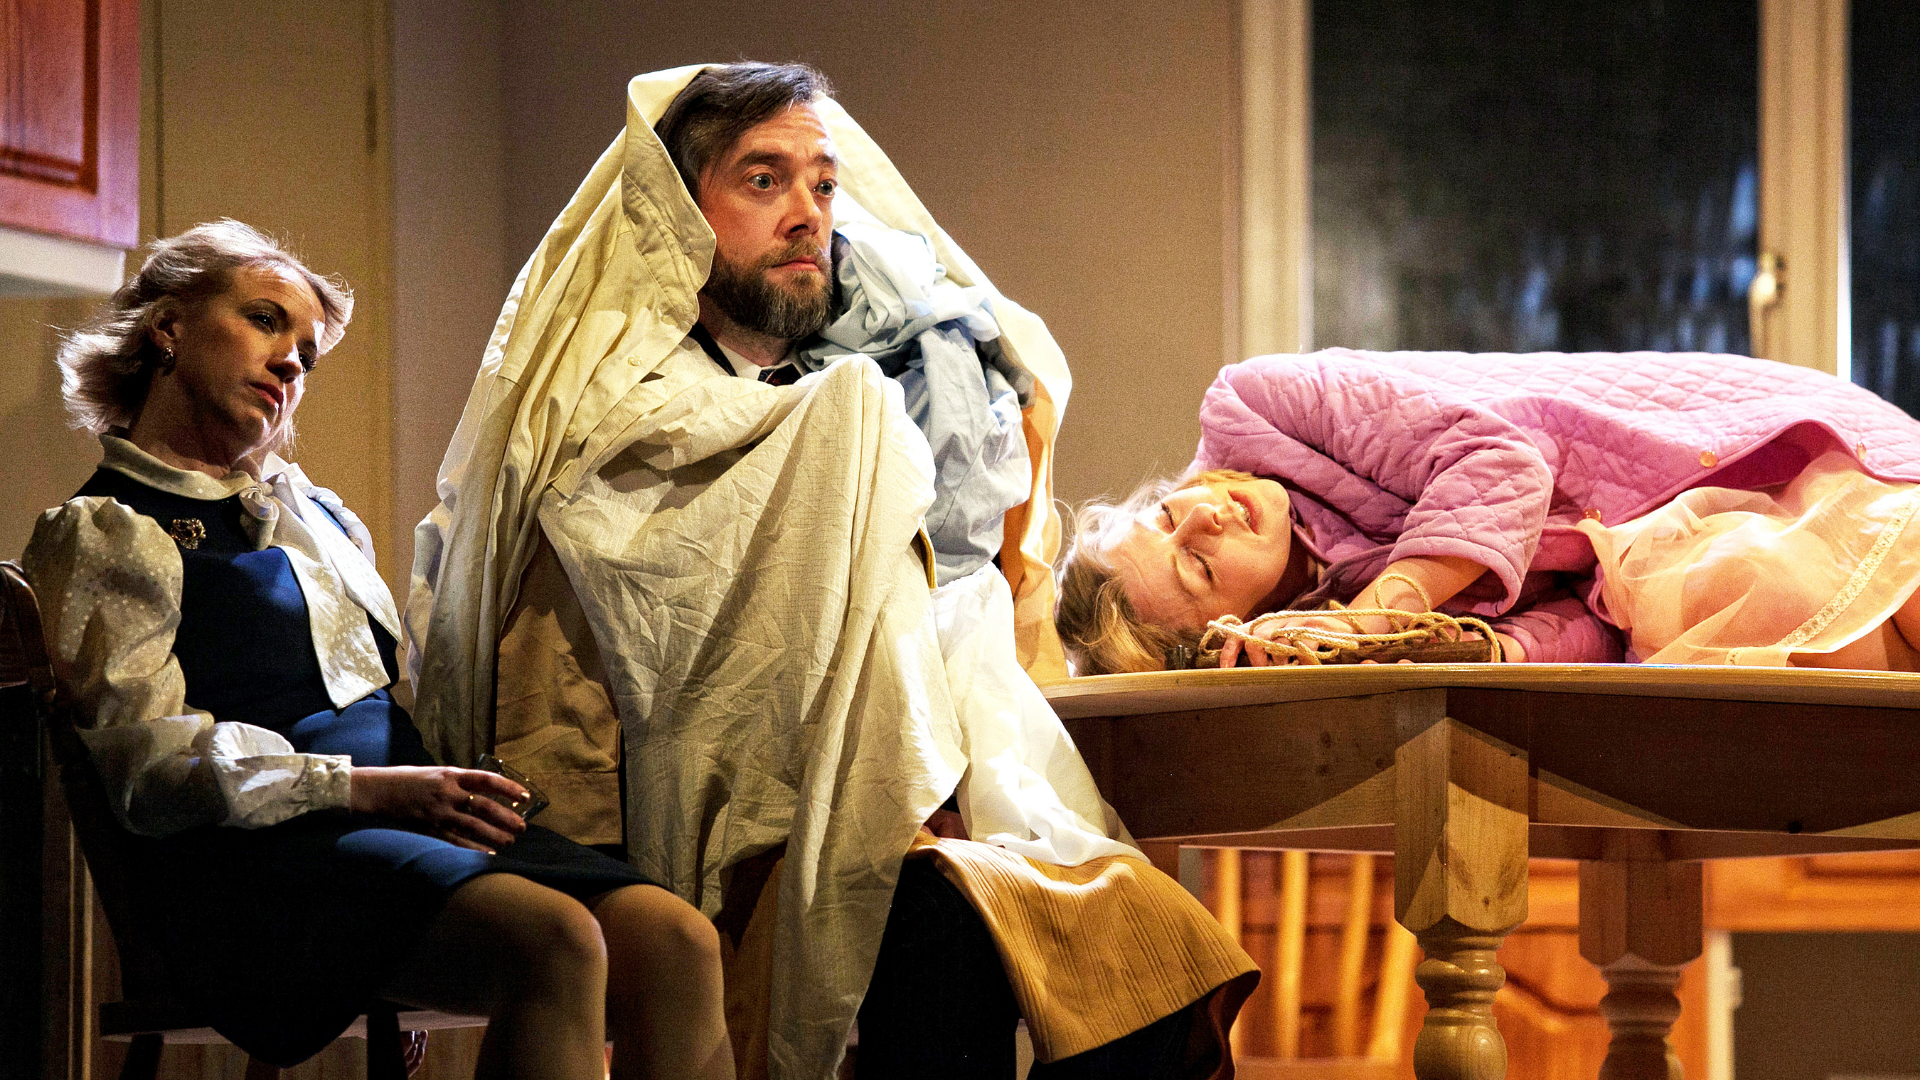 3 characters looking tired and fed up. 1 lady is laid on the kitchen table and another man is under a pile of clothes